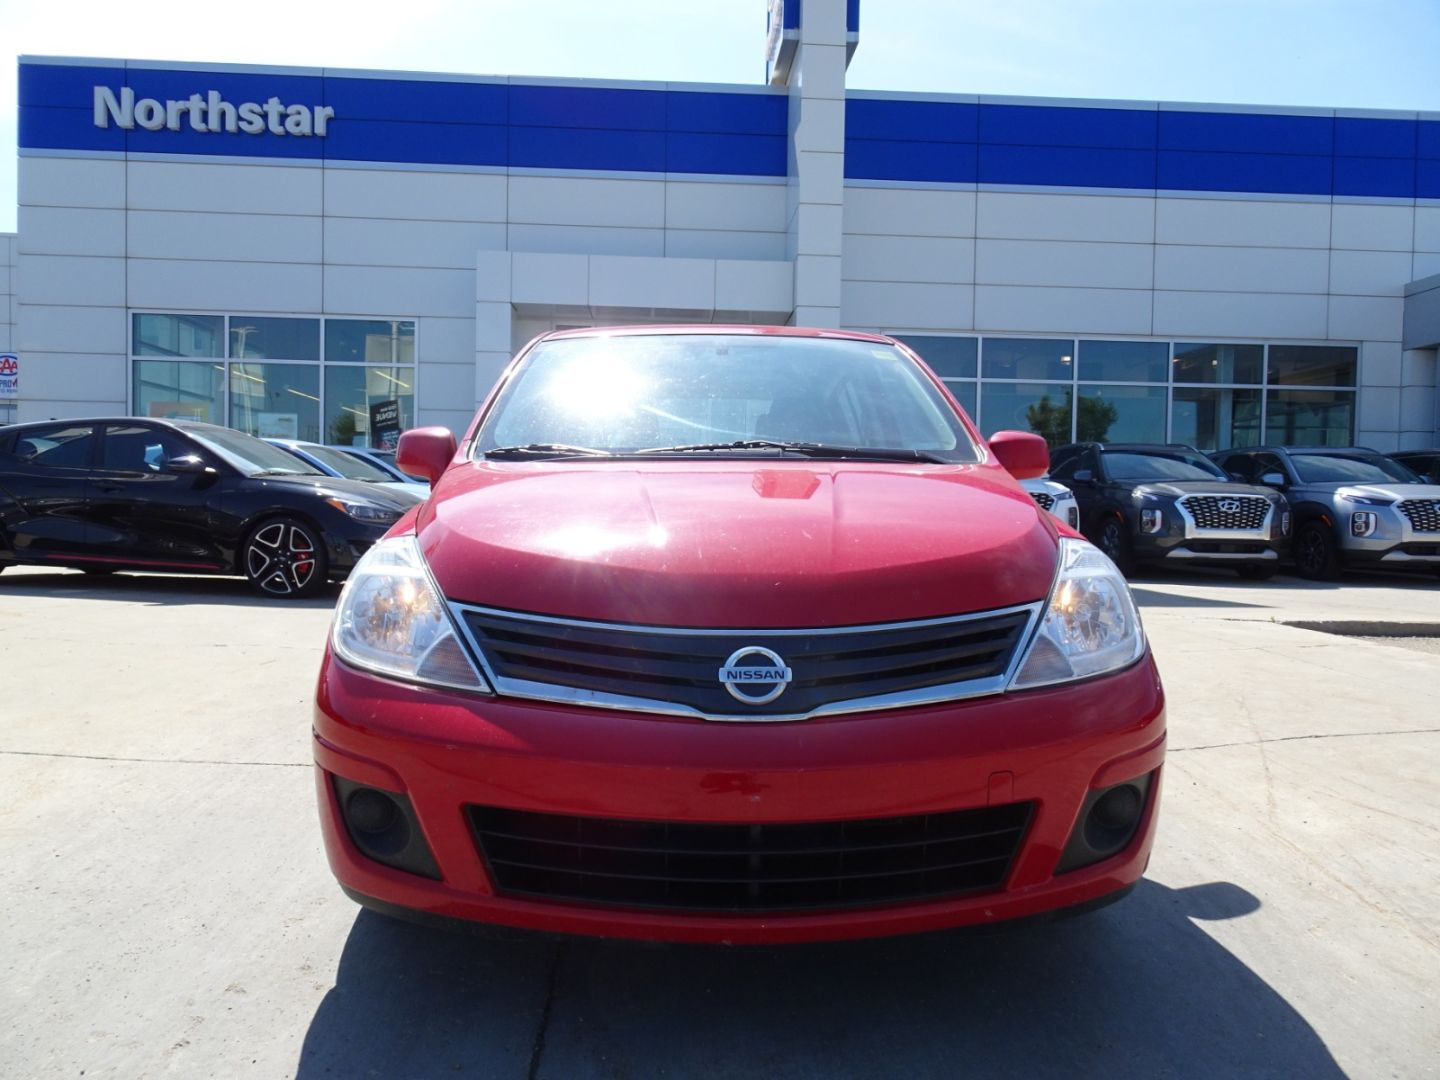 2012 Nissan Versa 1.8 S for sale in Edmonton, Alberta